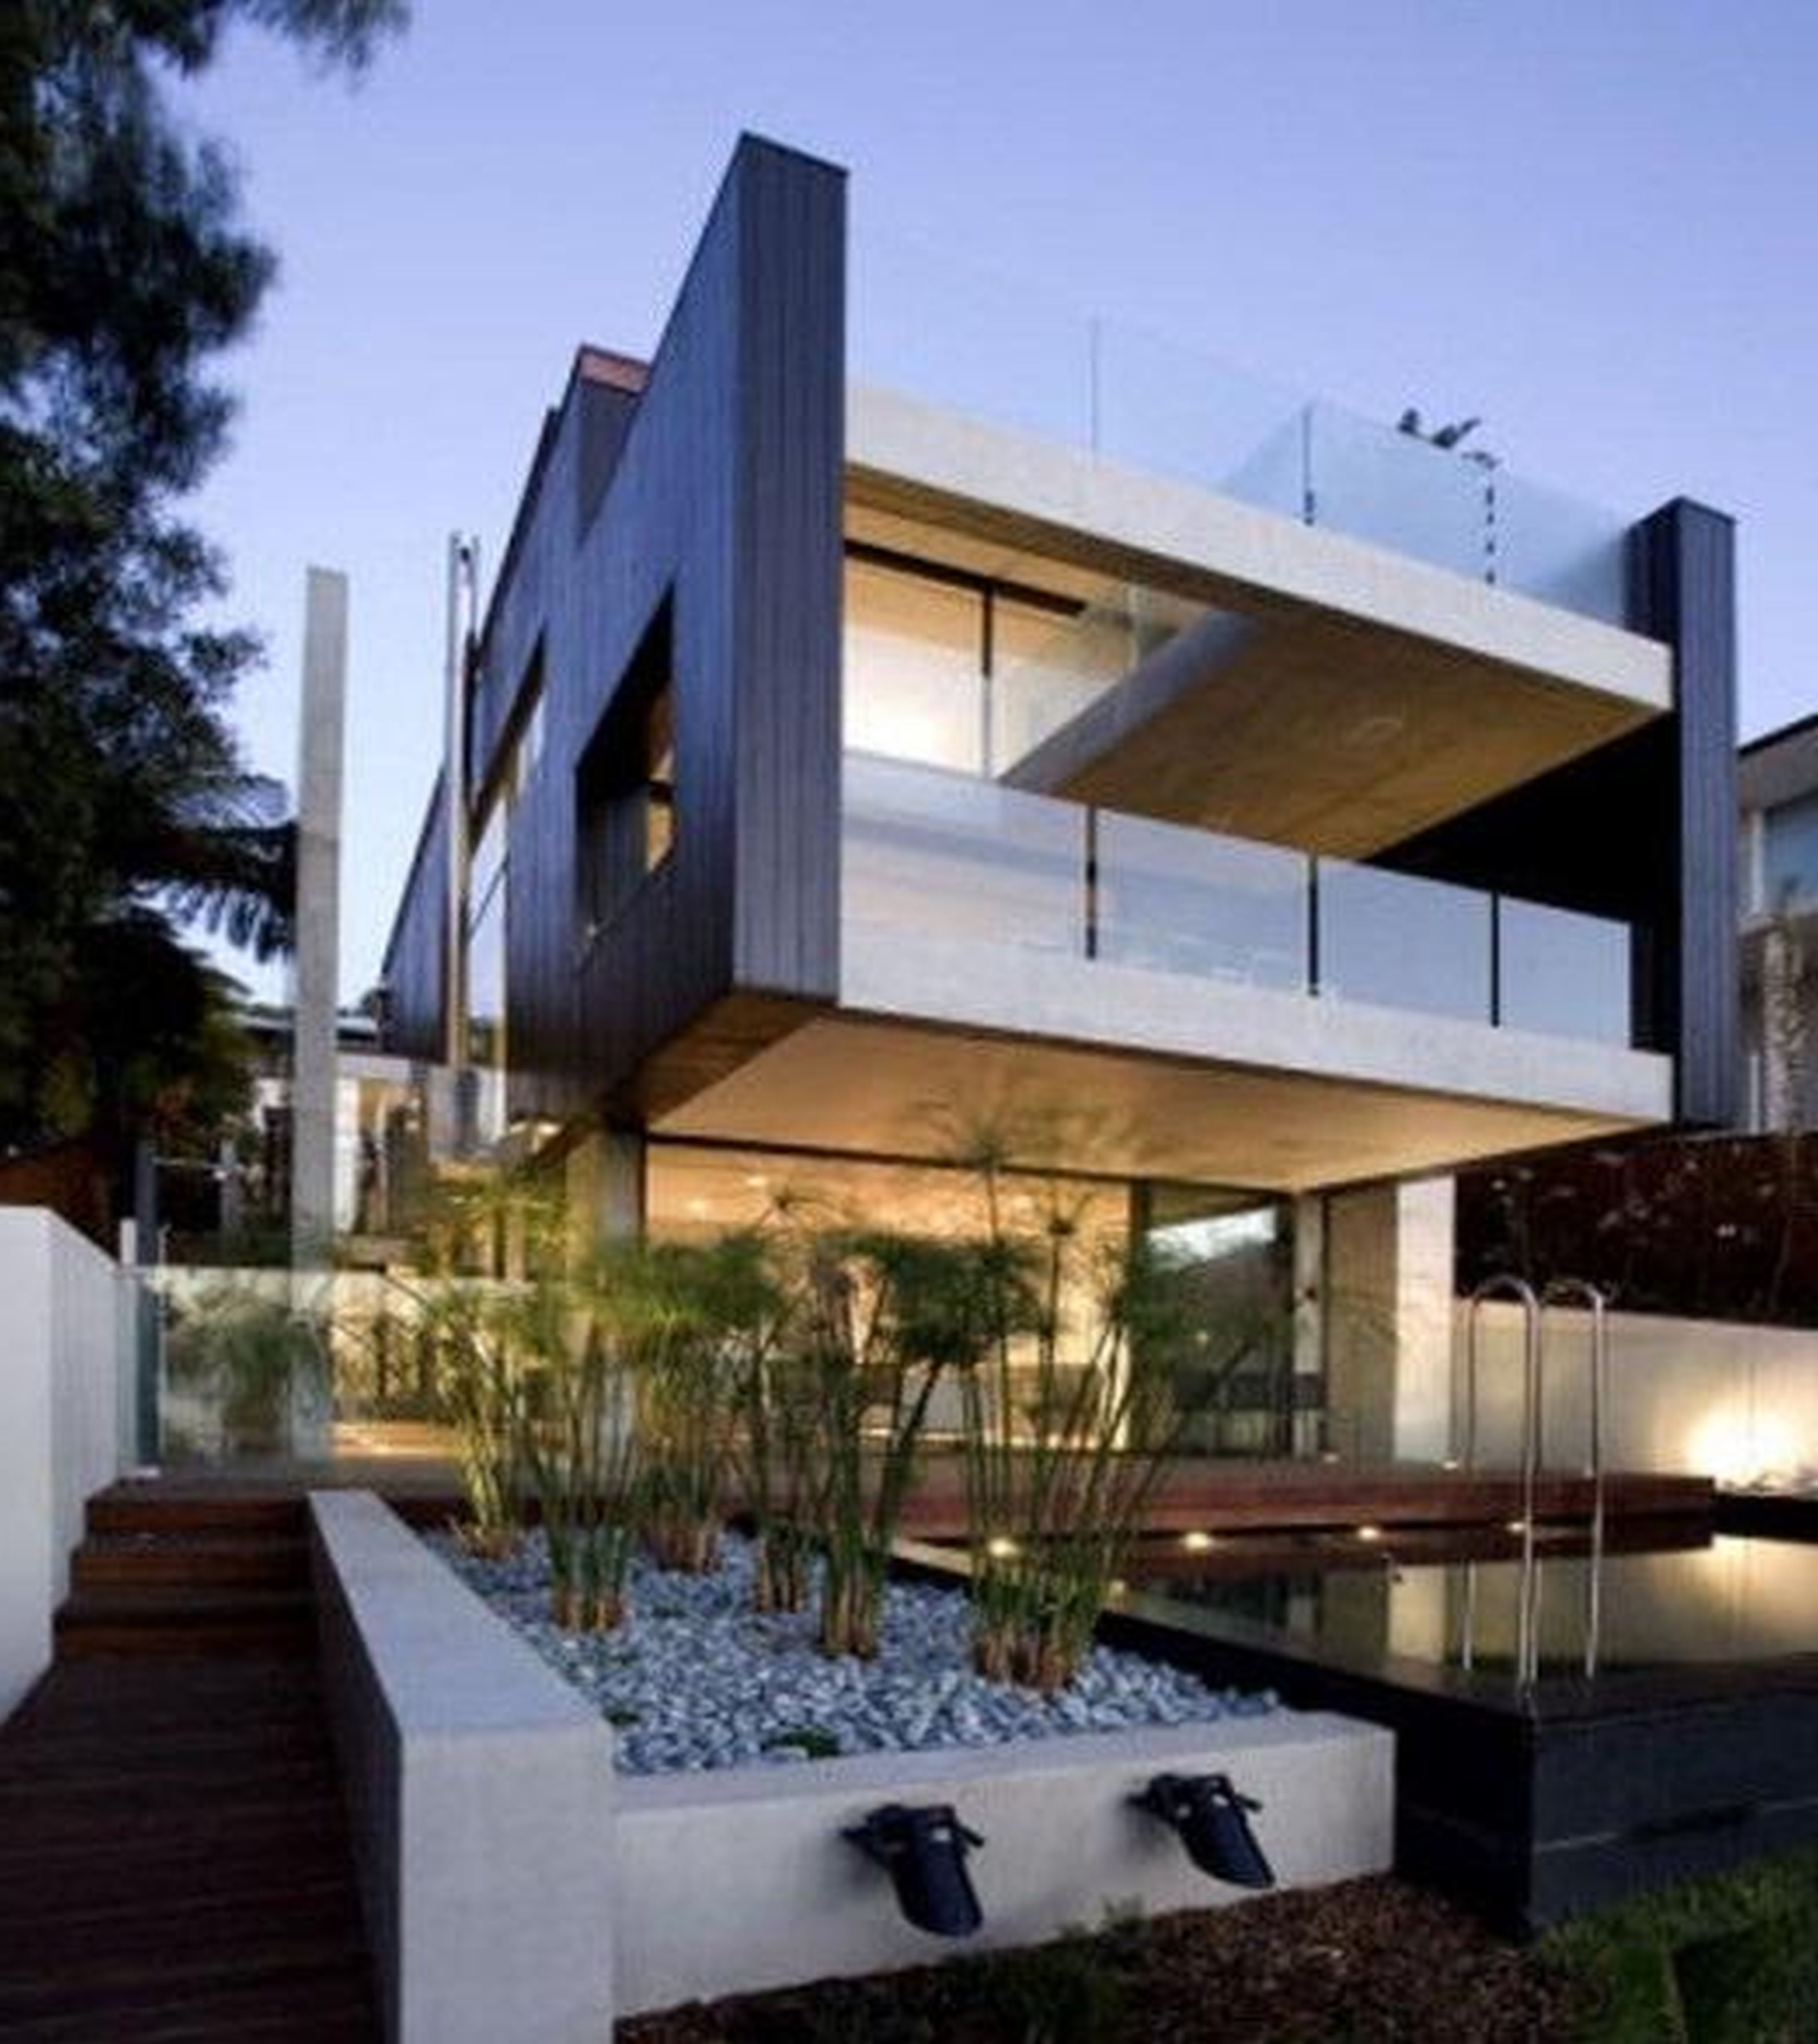 Architects home on narrow beach lot google search beach house pinterest modern modern - Unique house concept to make contrasting exterior design ...